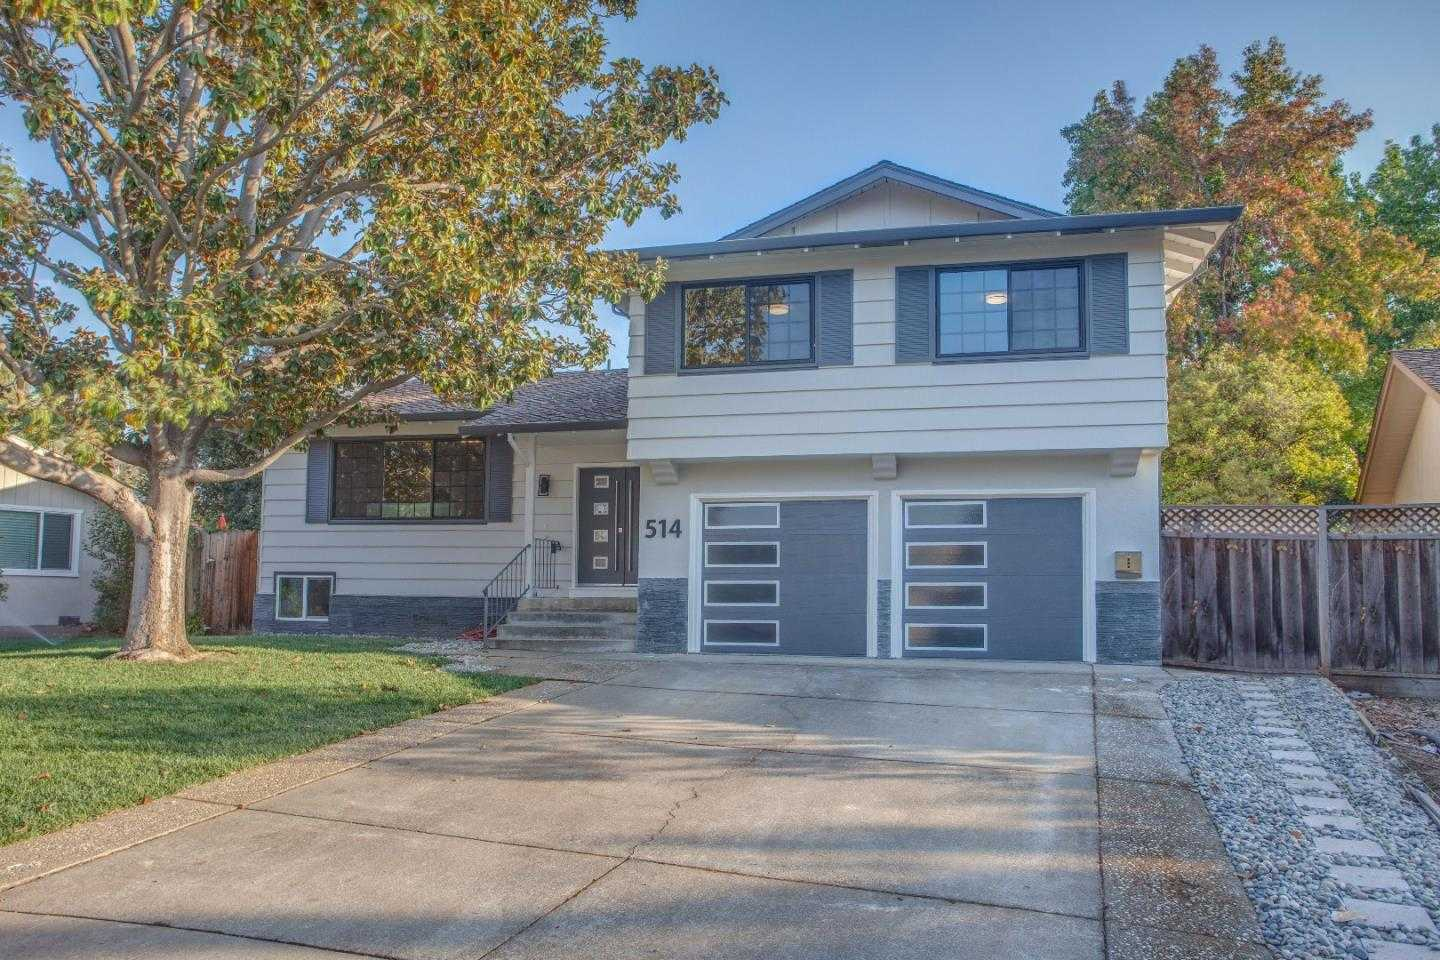 $2,168,000 - 5Br/3Ba -  for Sale in Sunnyvale